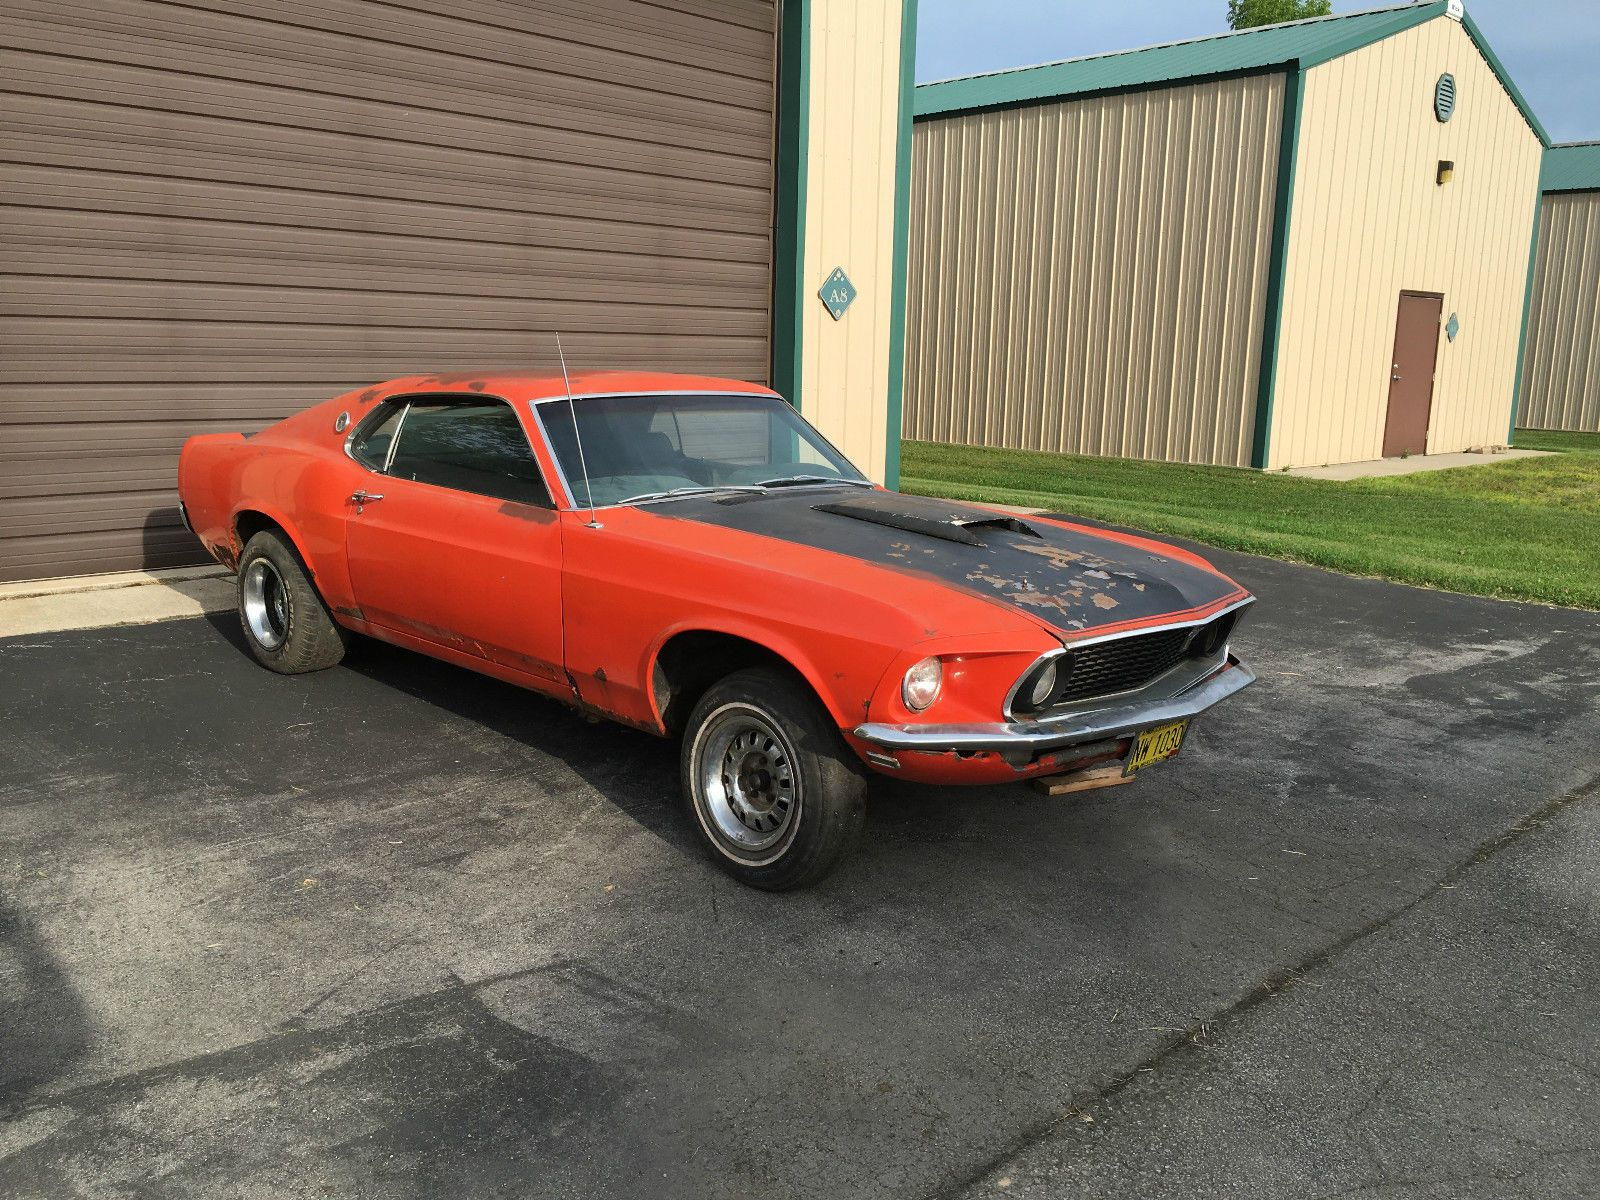 1969 ford mustang fastback sport roof project car for sale